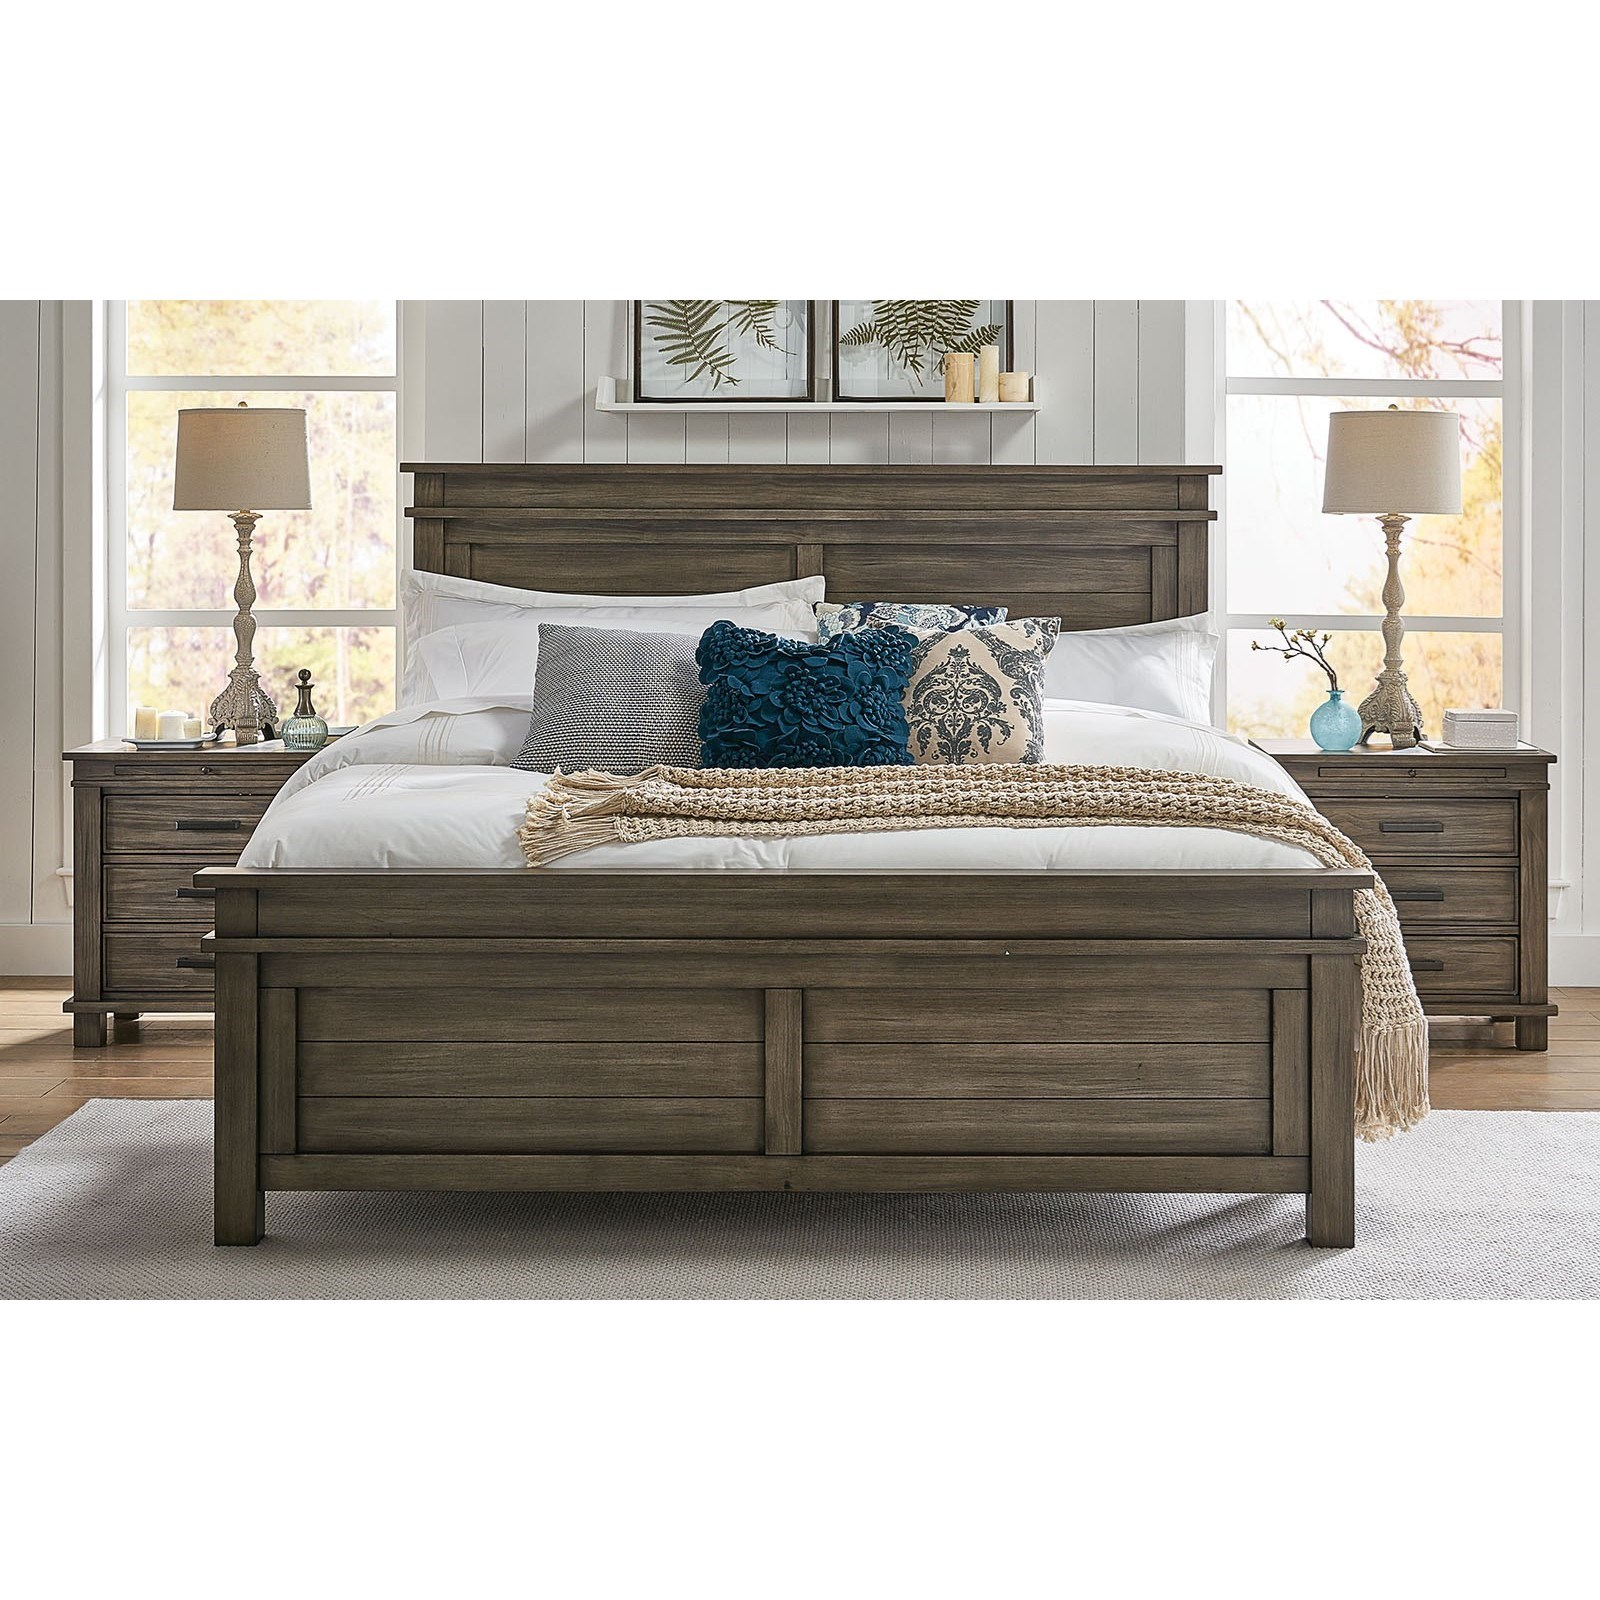 Glacier Point Twin Panel Bed by A-A at Walker's Furniture